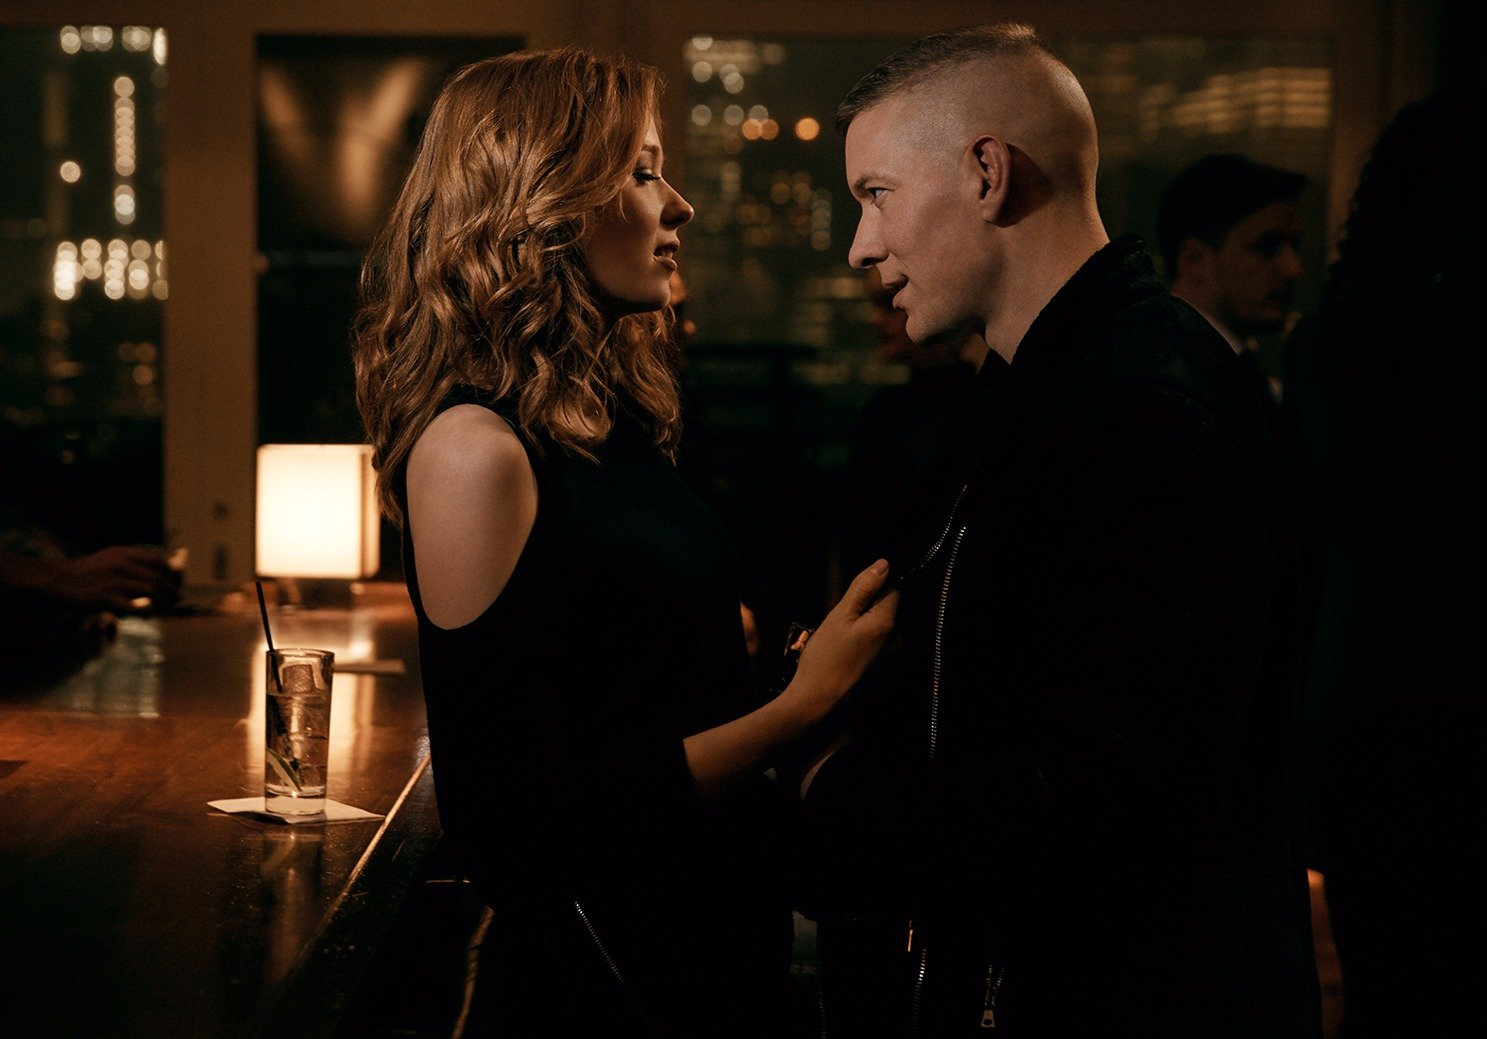 Joseph Sikora acting a scene with Lucy Walters at a bar.